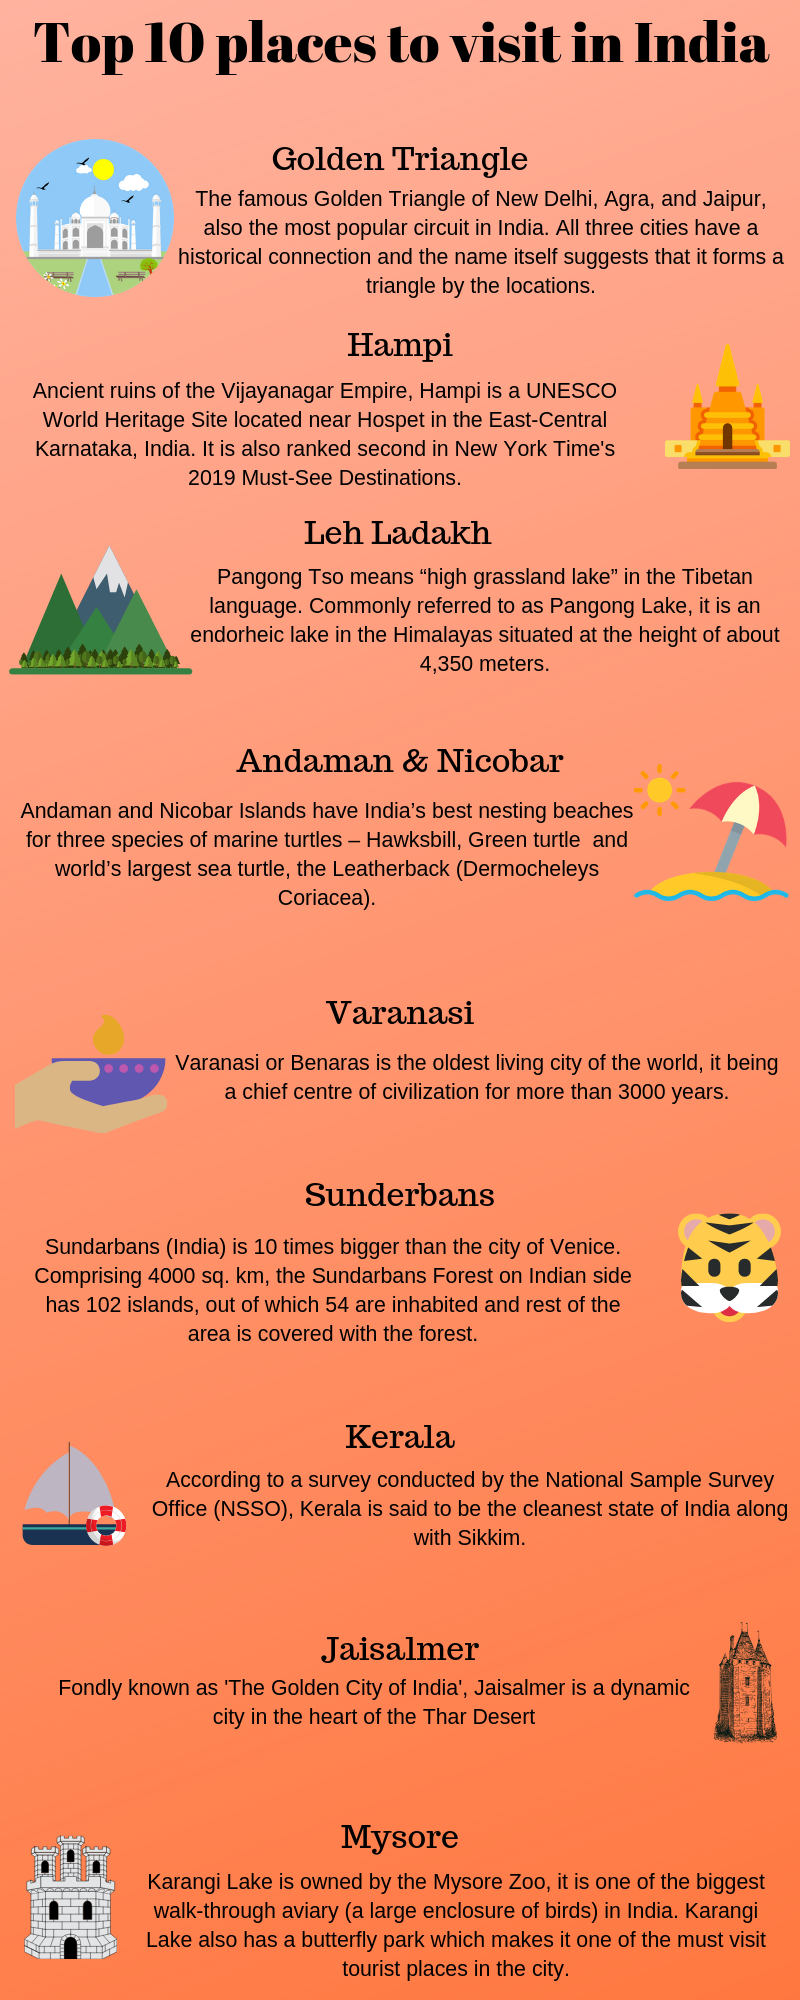 Top 10 places in India